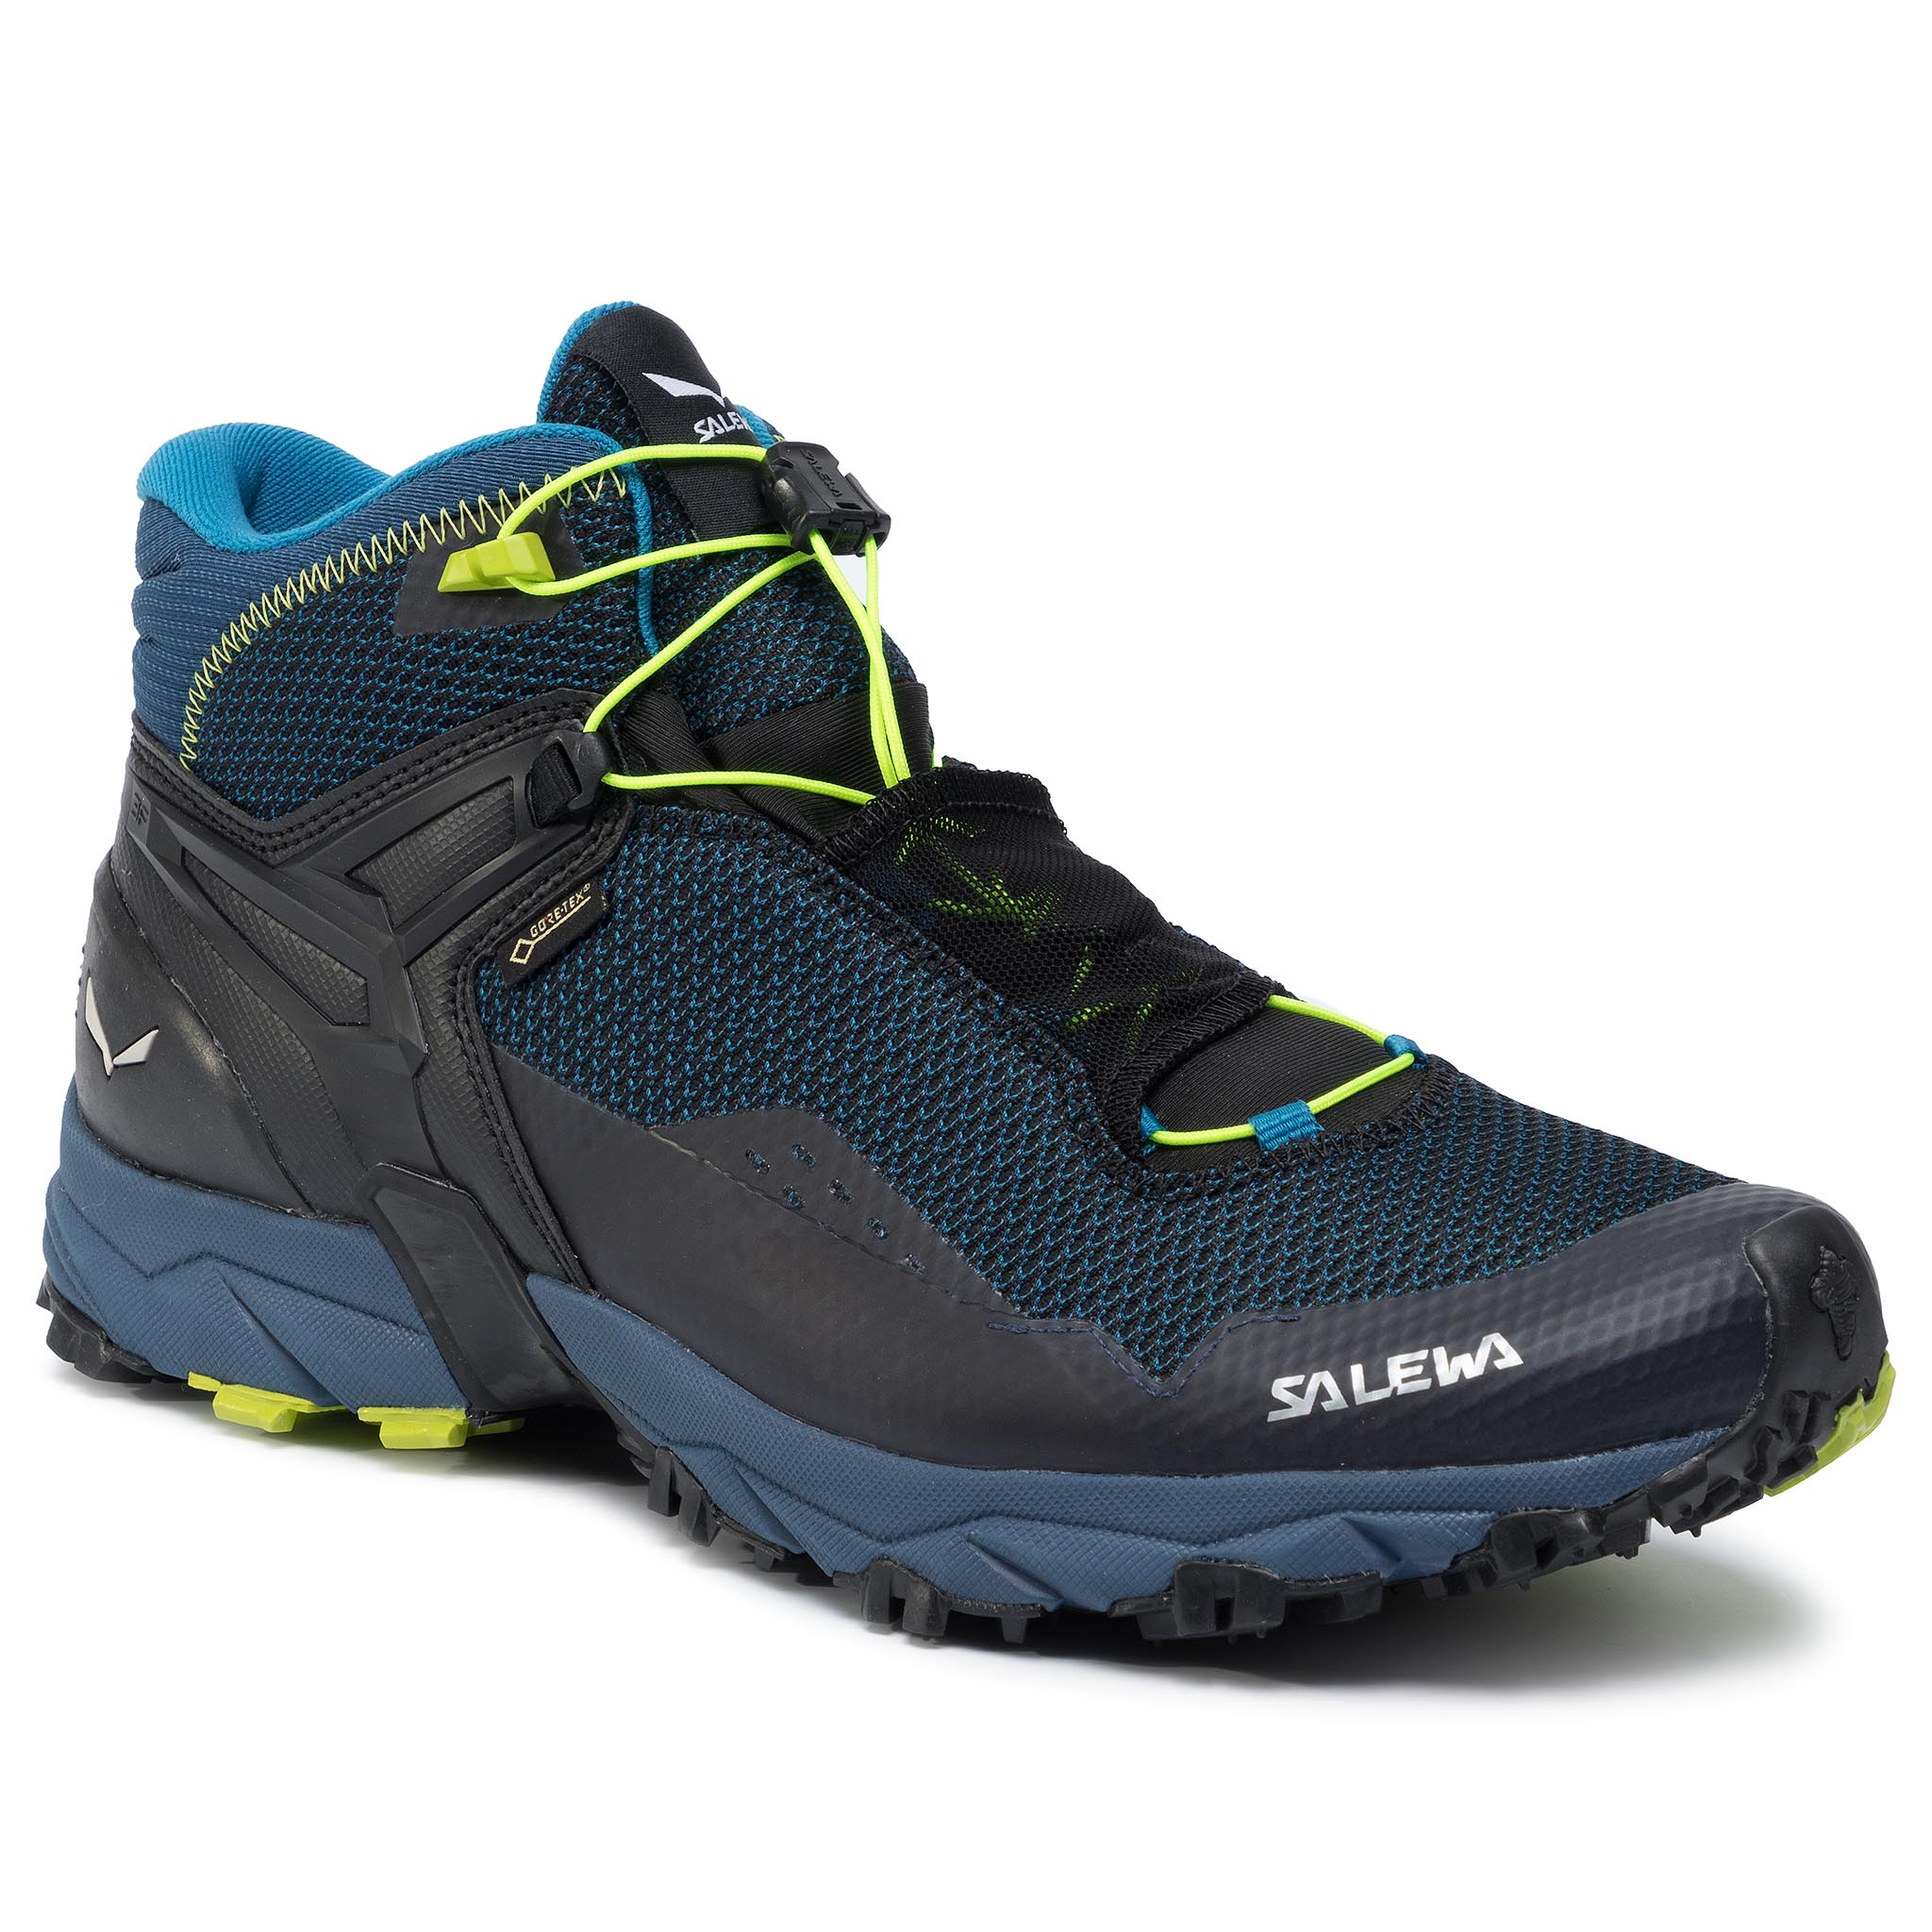 Trekkings SALEWA - Ms Ultra Flex Mid Gtx GORE-TEX 64416 8968 Poseidon/Fluo Yellow